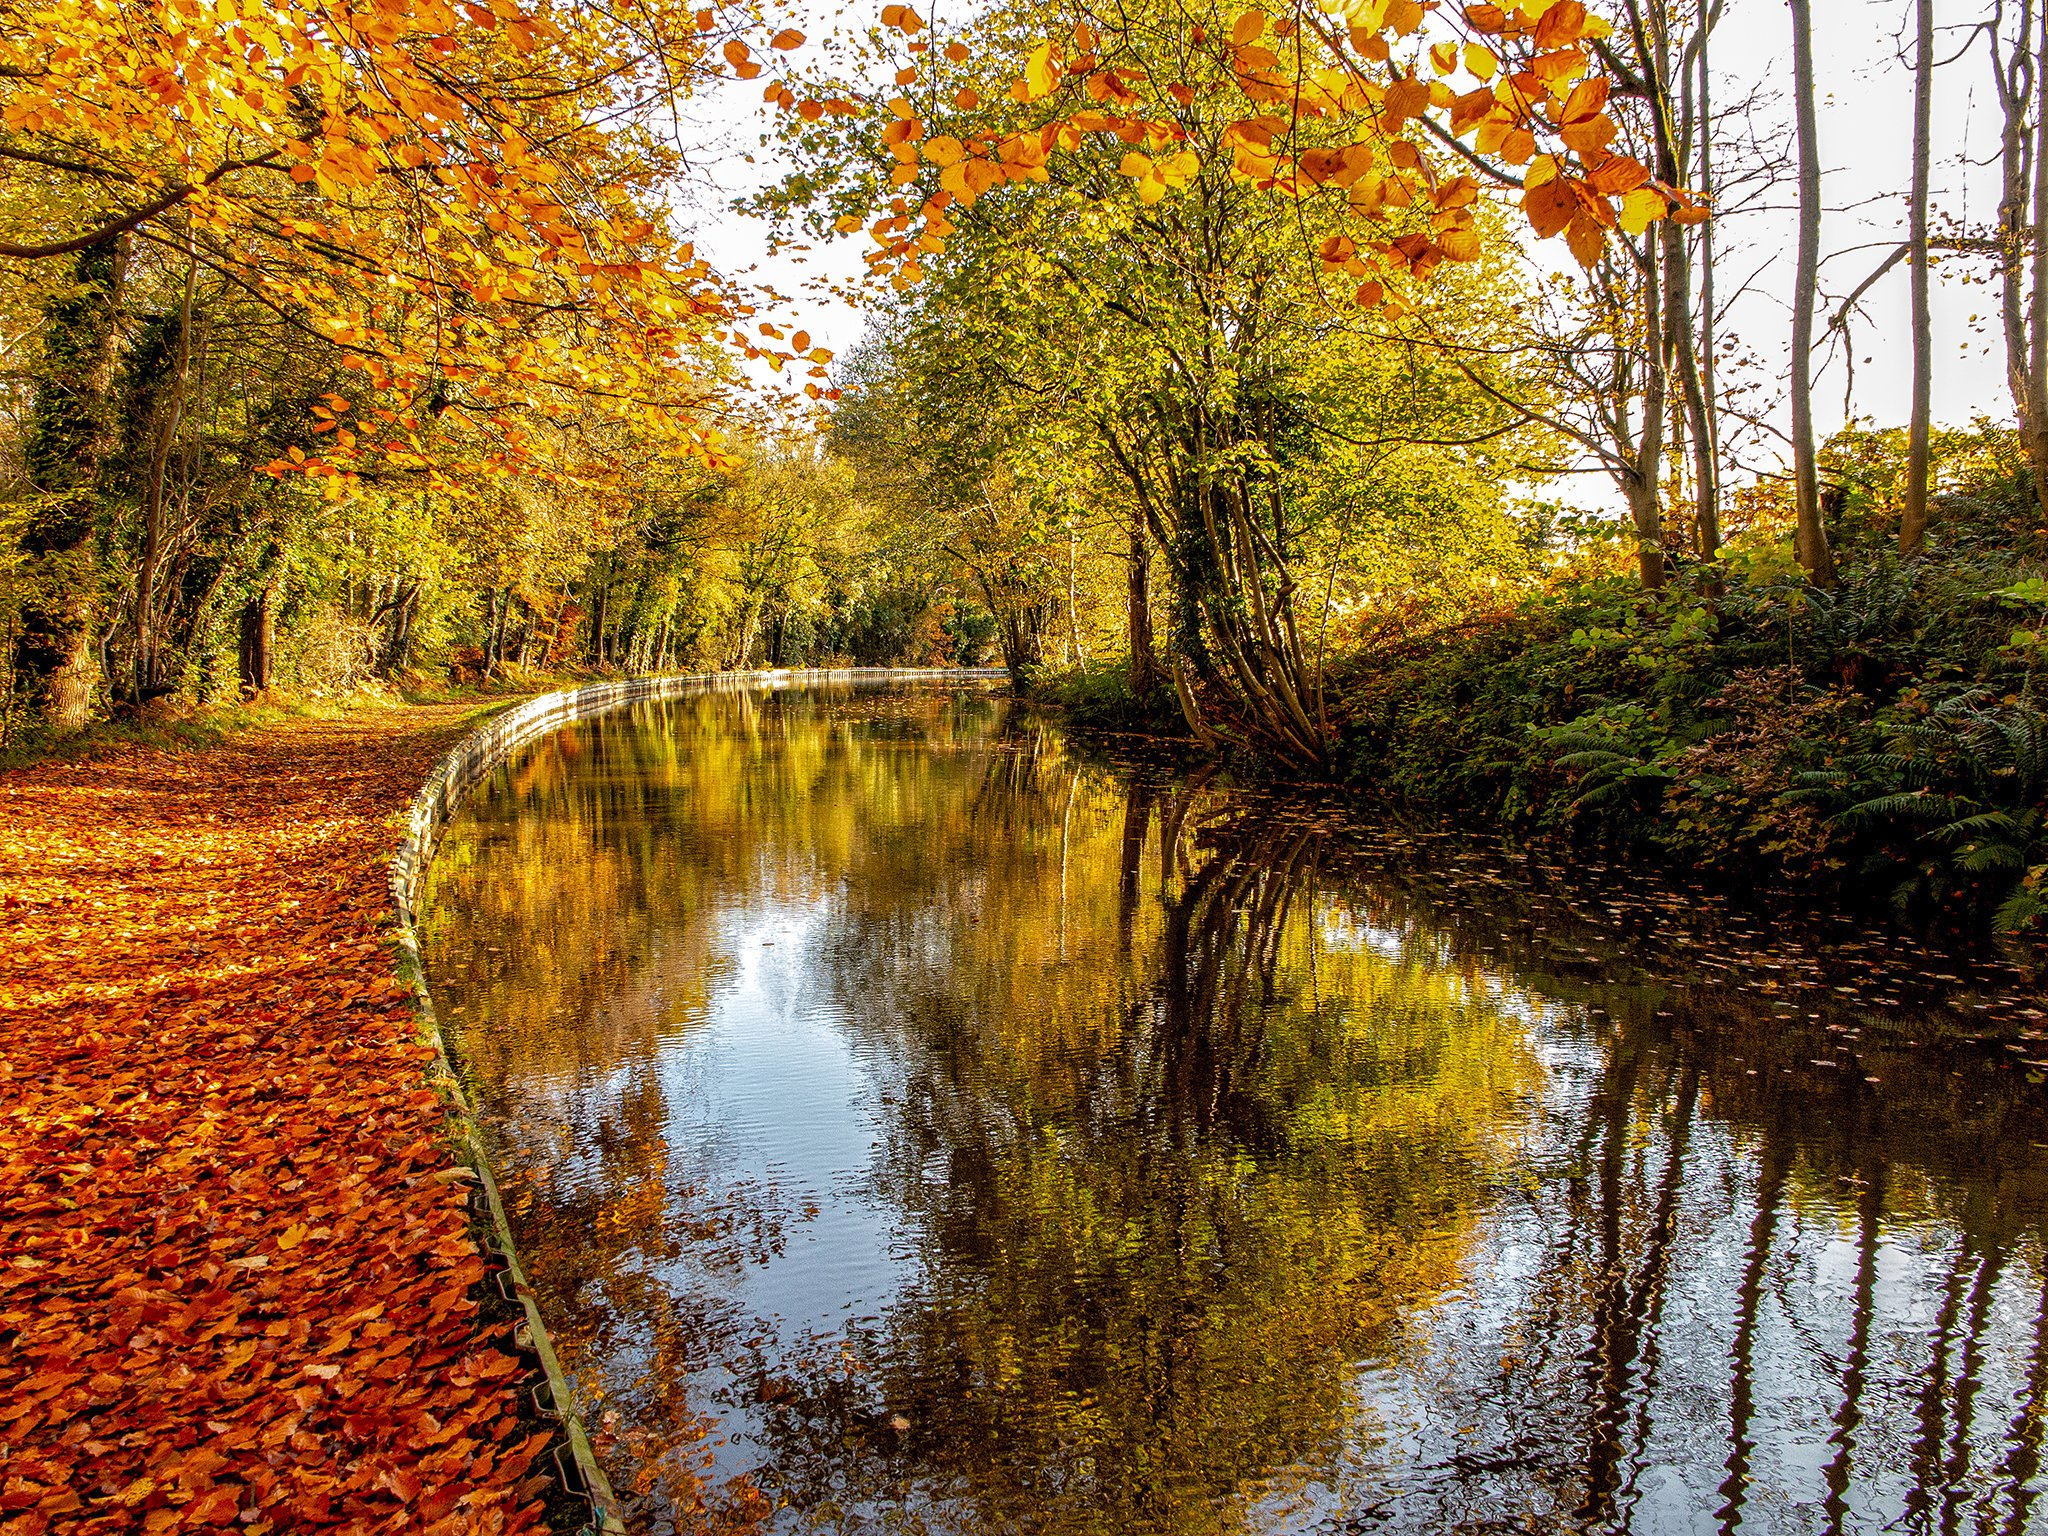 Autumnal Bend  It was amazingly bright along the canal by Blake Mere this morning. The sun shining in was amplifying the colours beautifully.  #canal #shropshire #autumn @CanalRiverTrust @LynealTrust #ellesnere https://t.co/9fmNDR2Pec